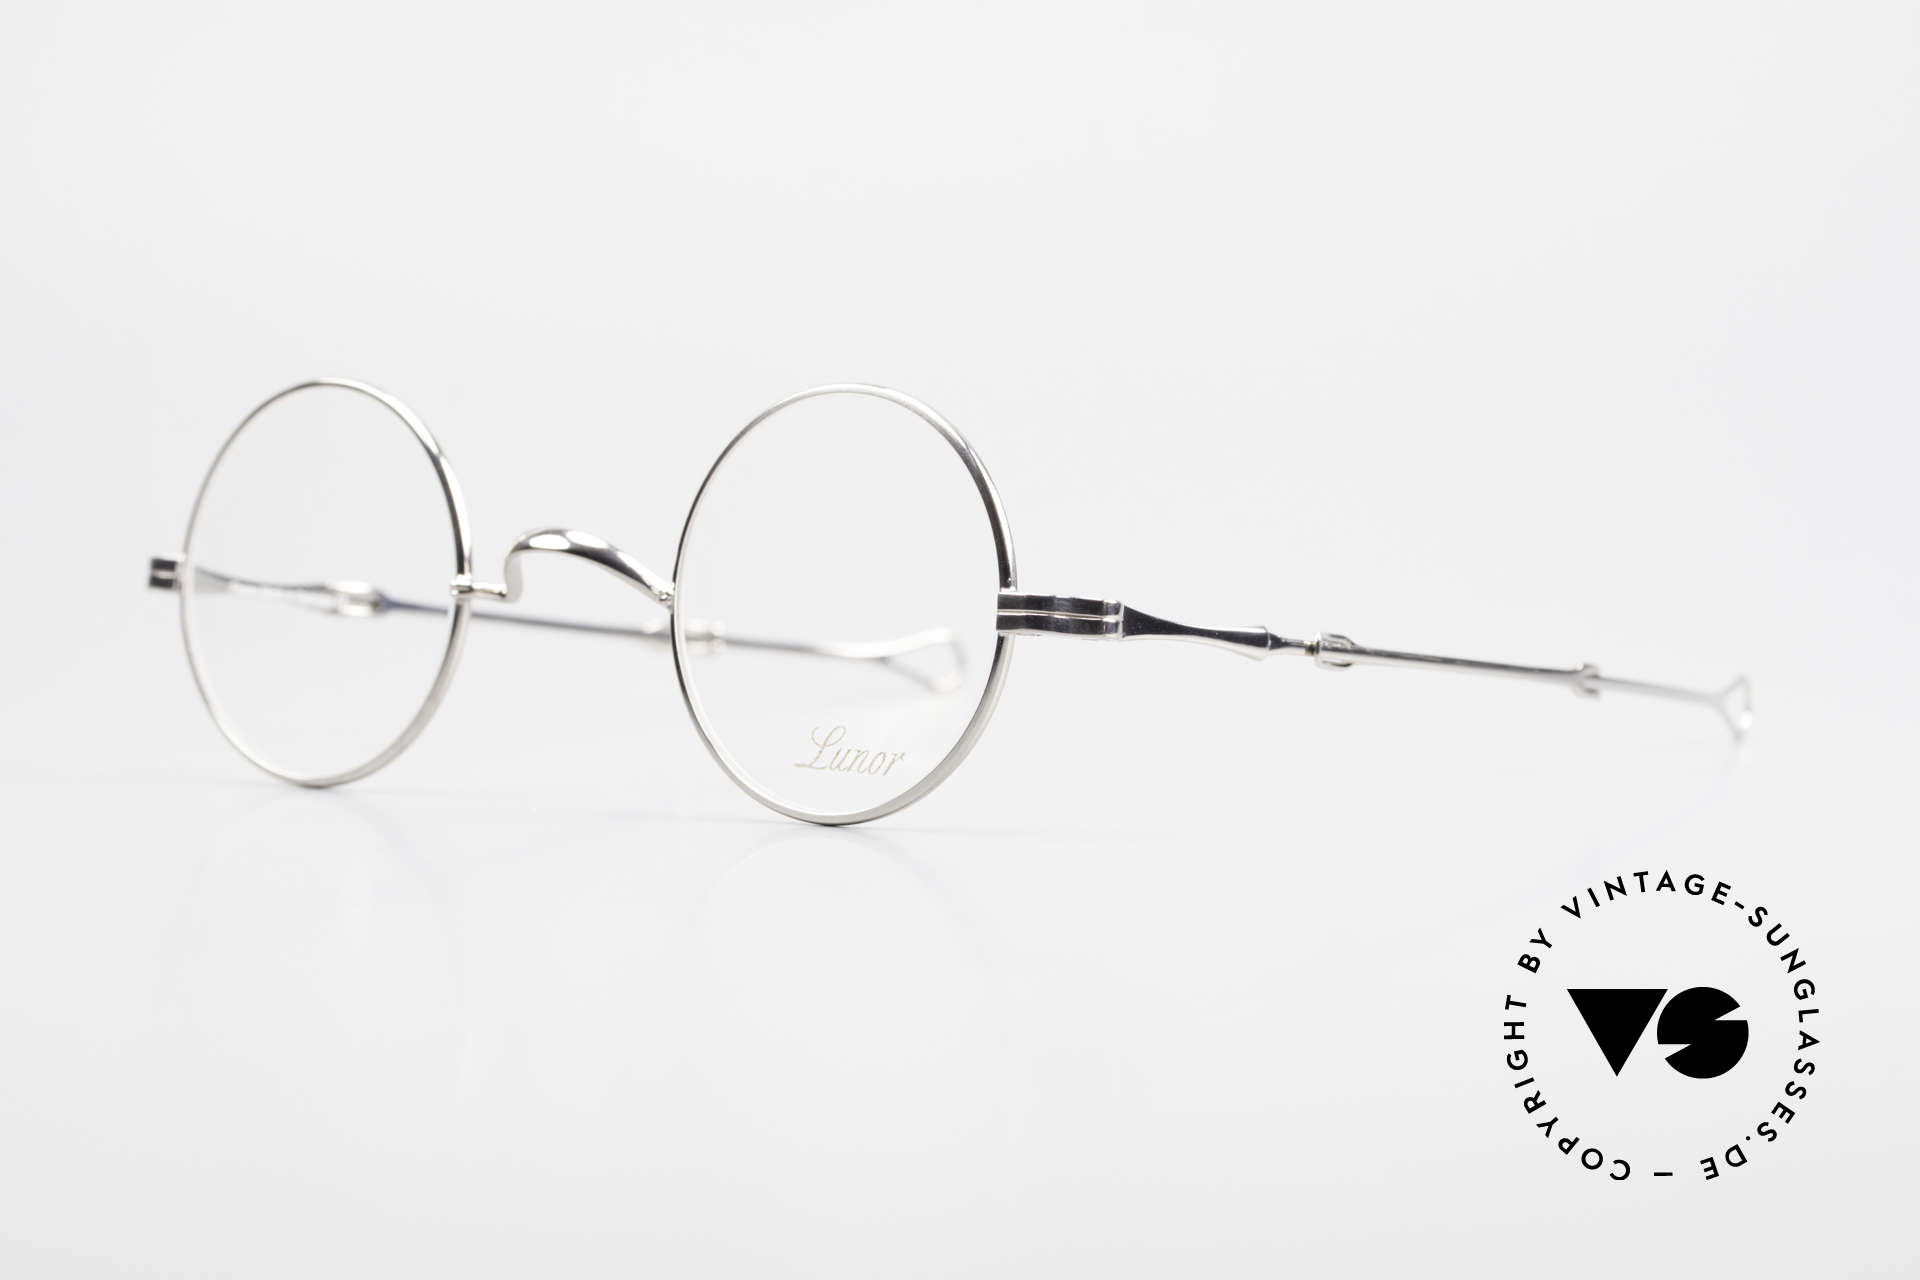 """Lunor I 12 Telescopic Round Glasses Slide Temples, well-known for the """"W-bridge"""" & the plain frame designs, Made for Men and Women"""